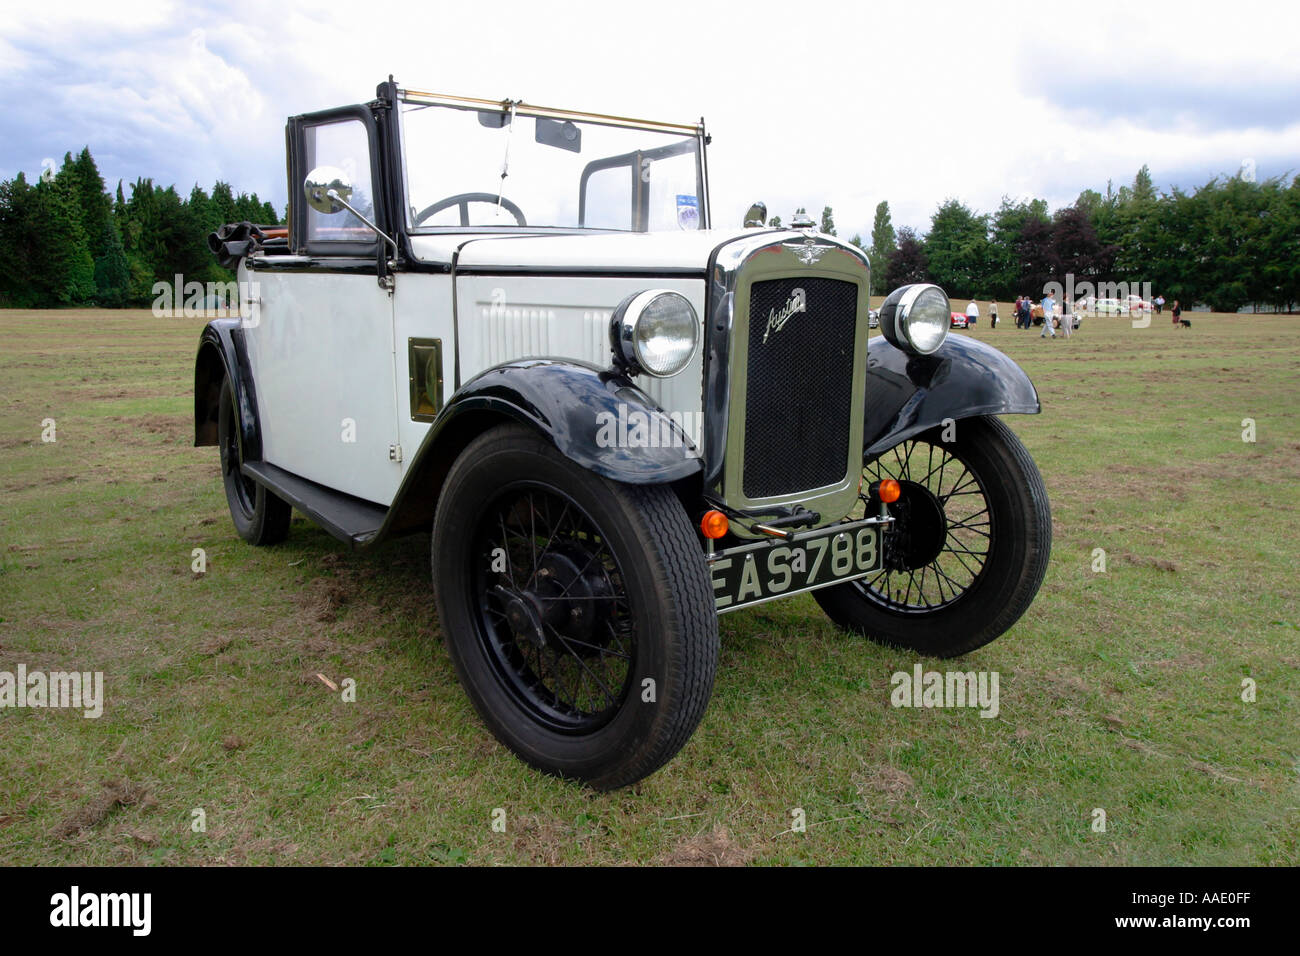 Austin 7 convertible car at a Vintage and veteran car show in ...